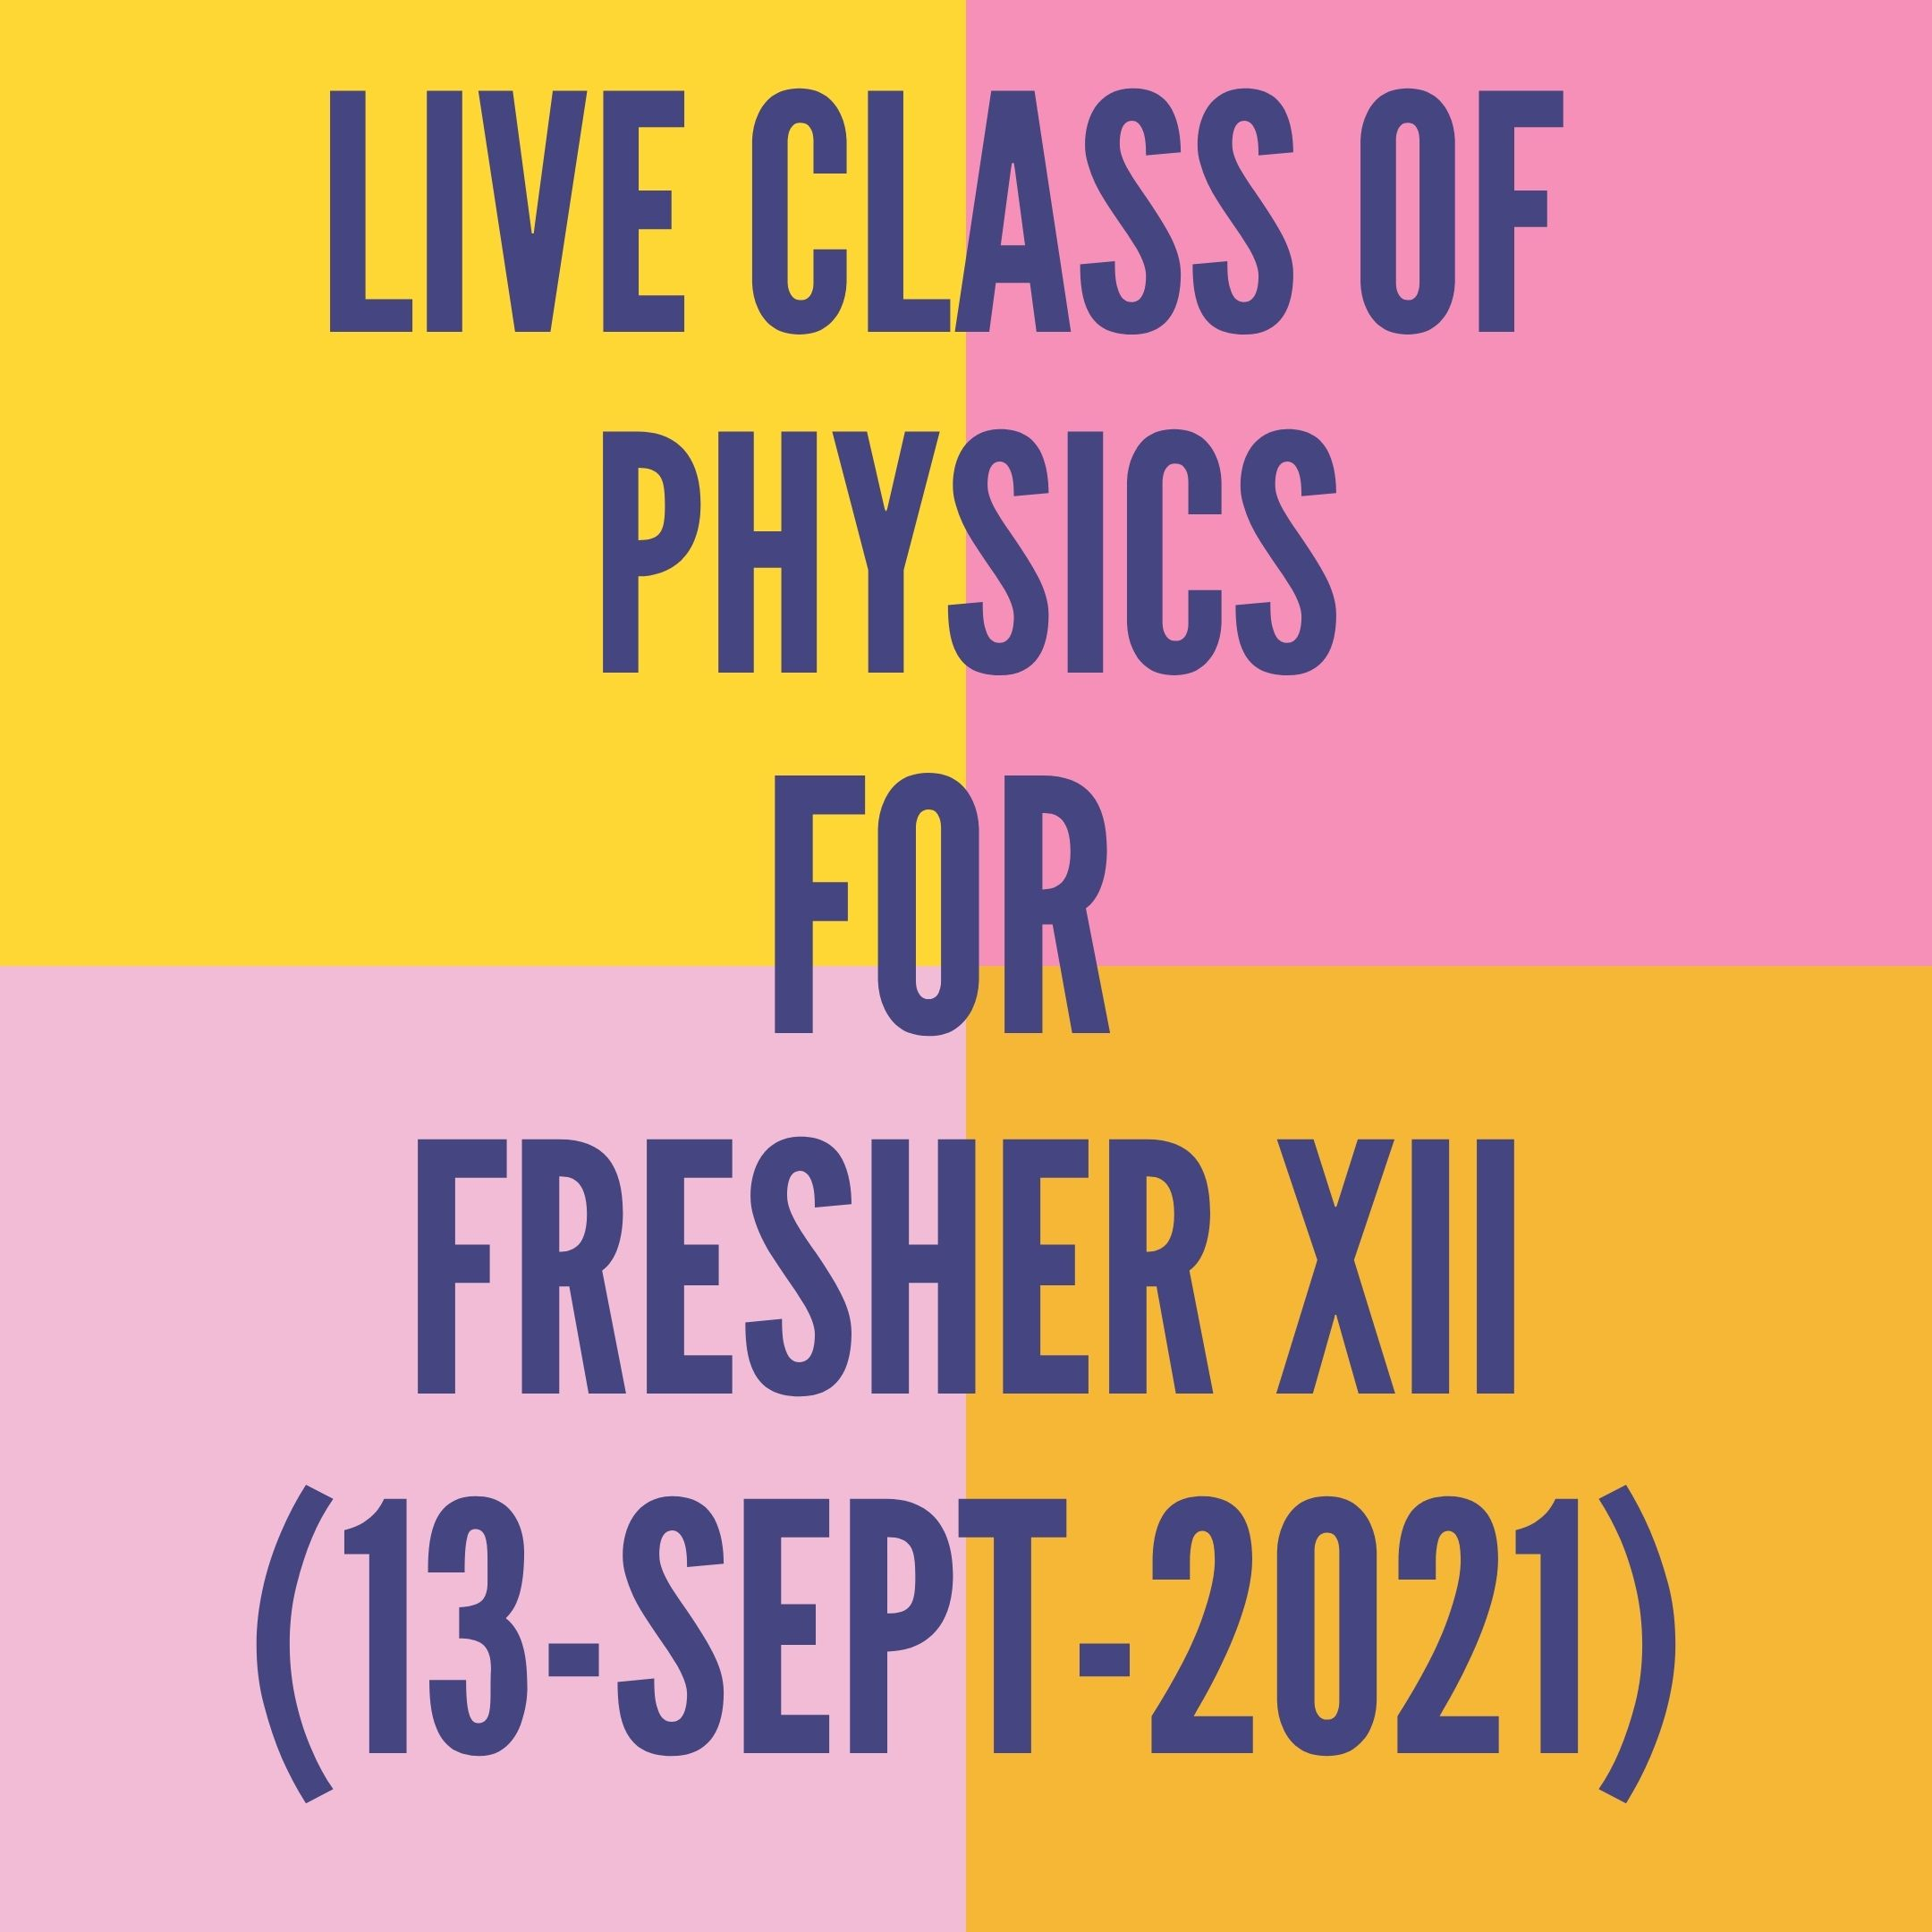 LIVE CLASS OF PHYSICS FOR FRESHER XII (13-SEPT-2021) PERMANENT MAGNETISM